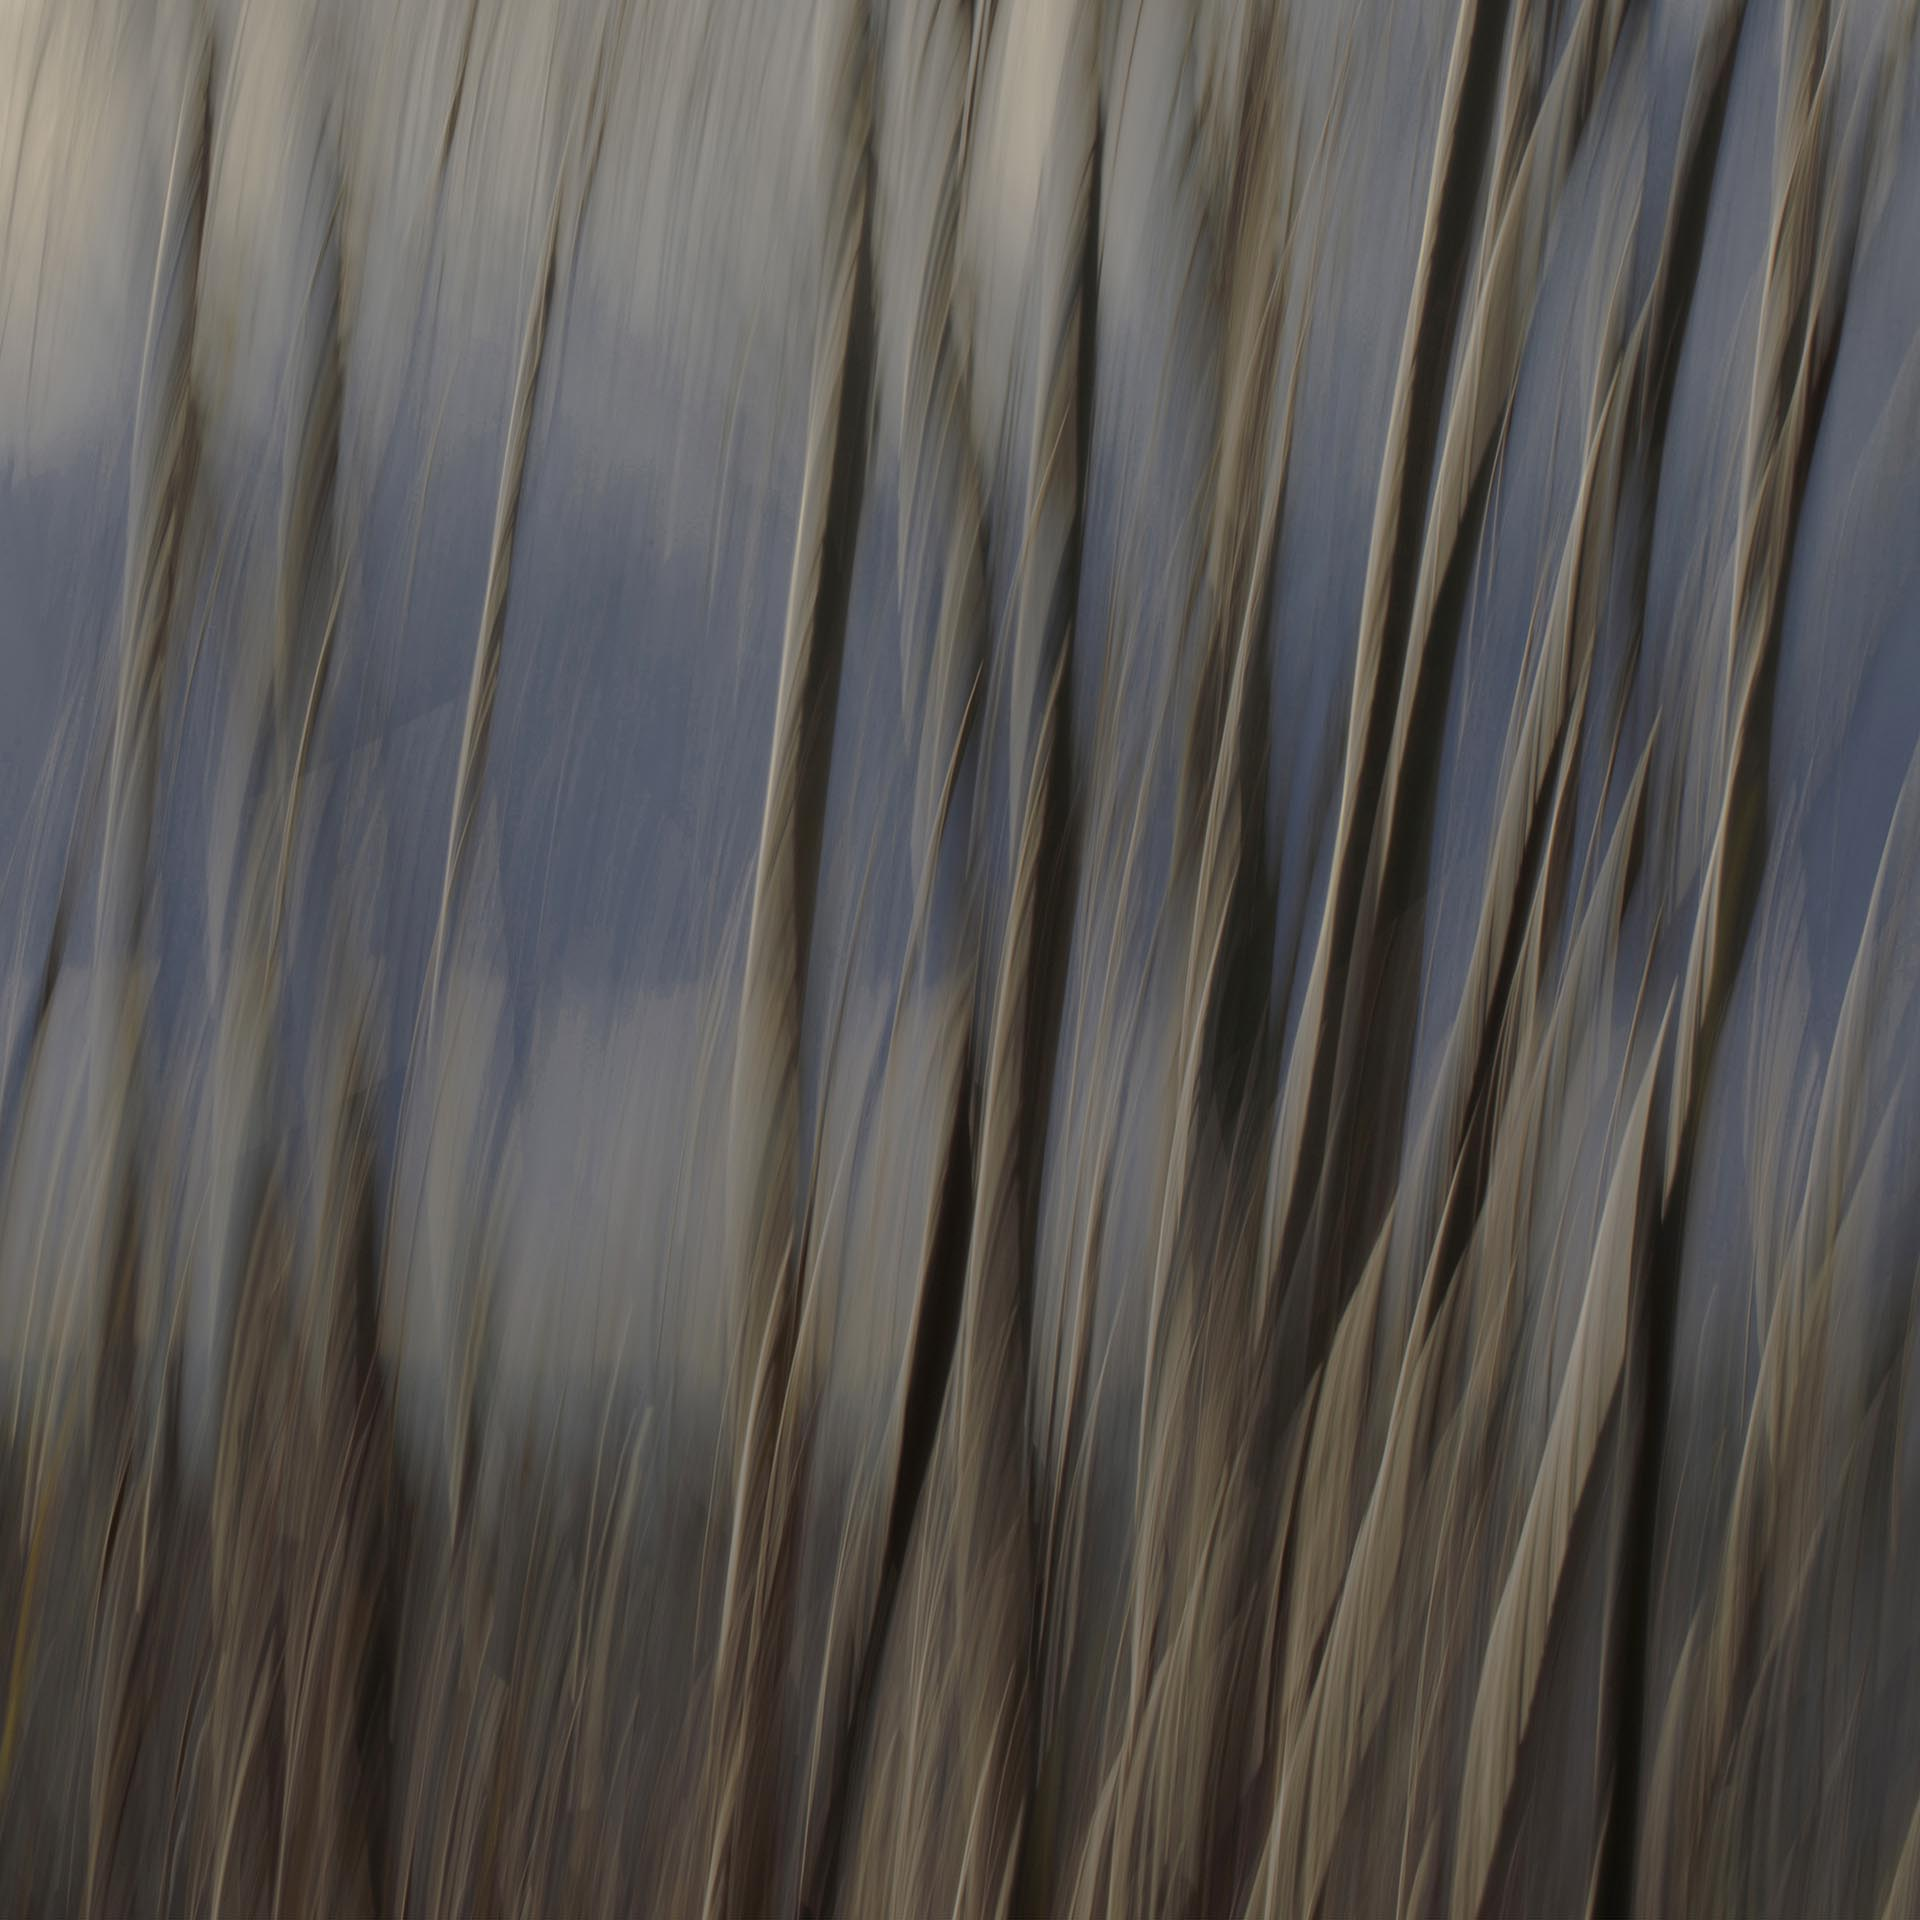 Branches of a willow against a dark background